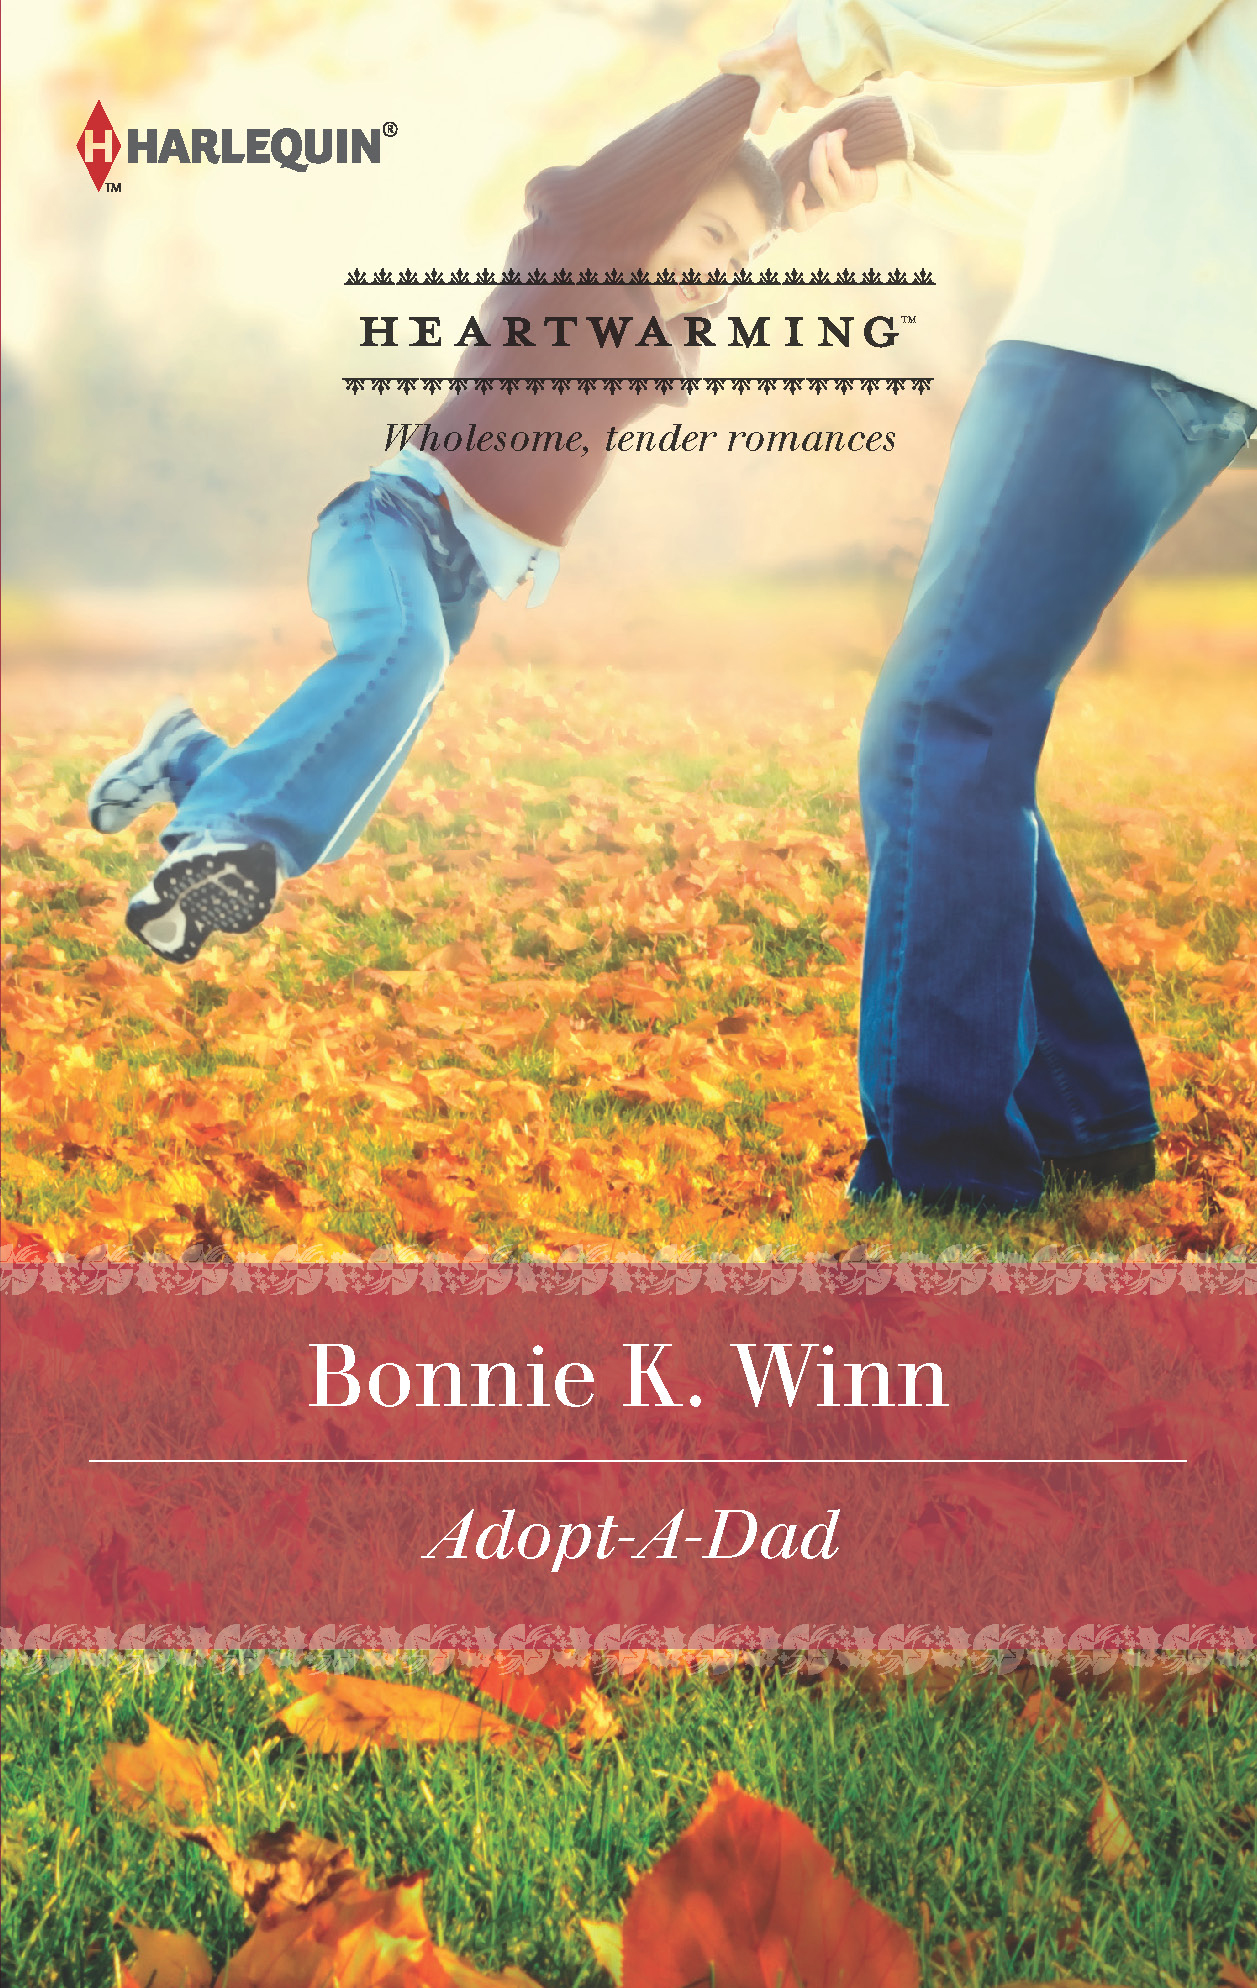 Adopt-A-Dad By: Bonnie K. Winn